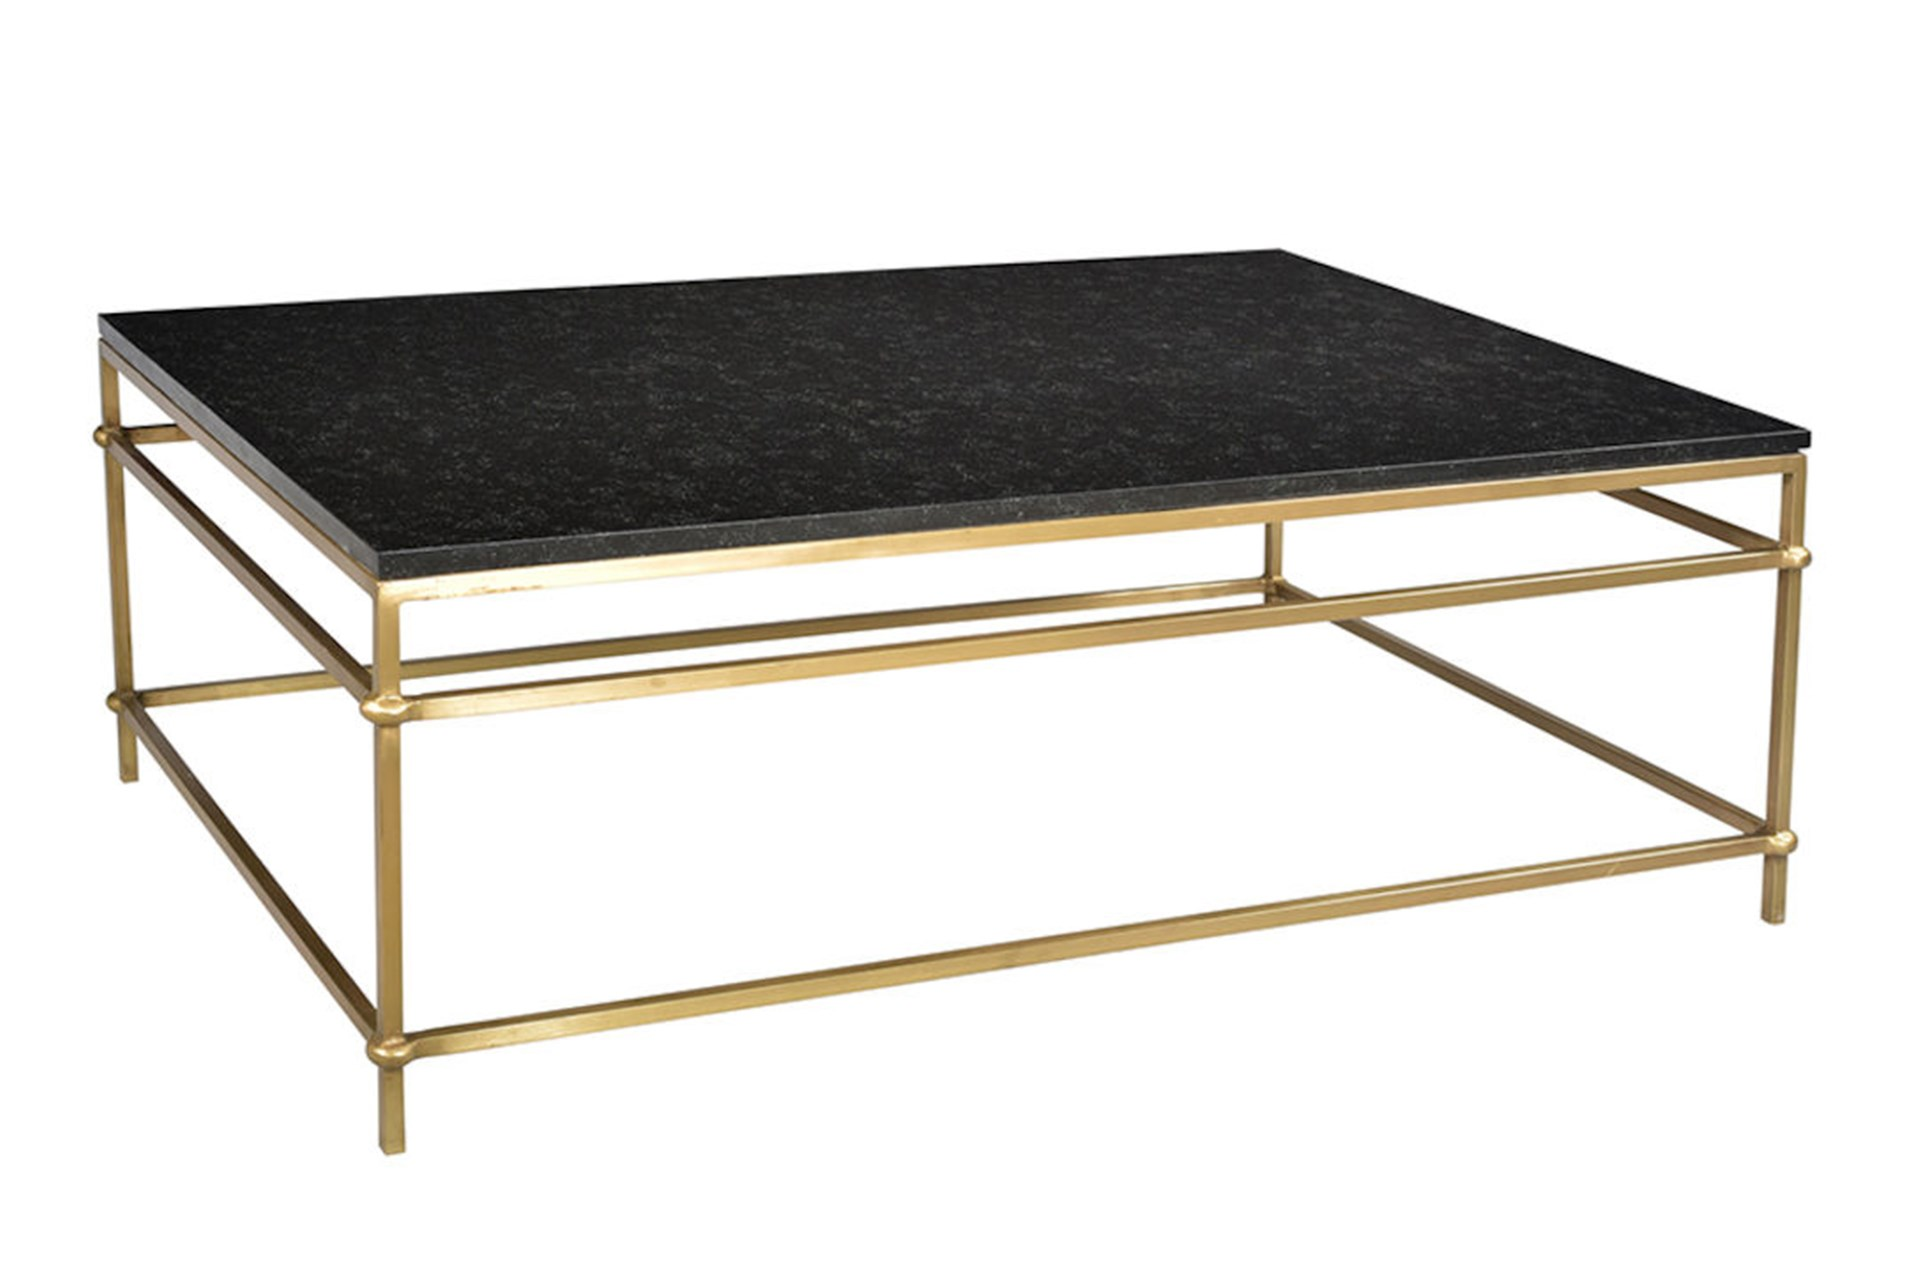 Black marble and brass cocktail table qty 1 has been successfully added to your cart